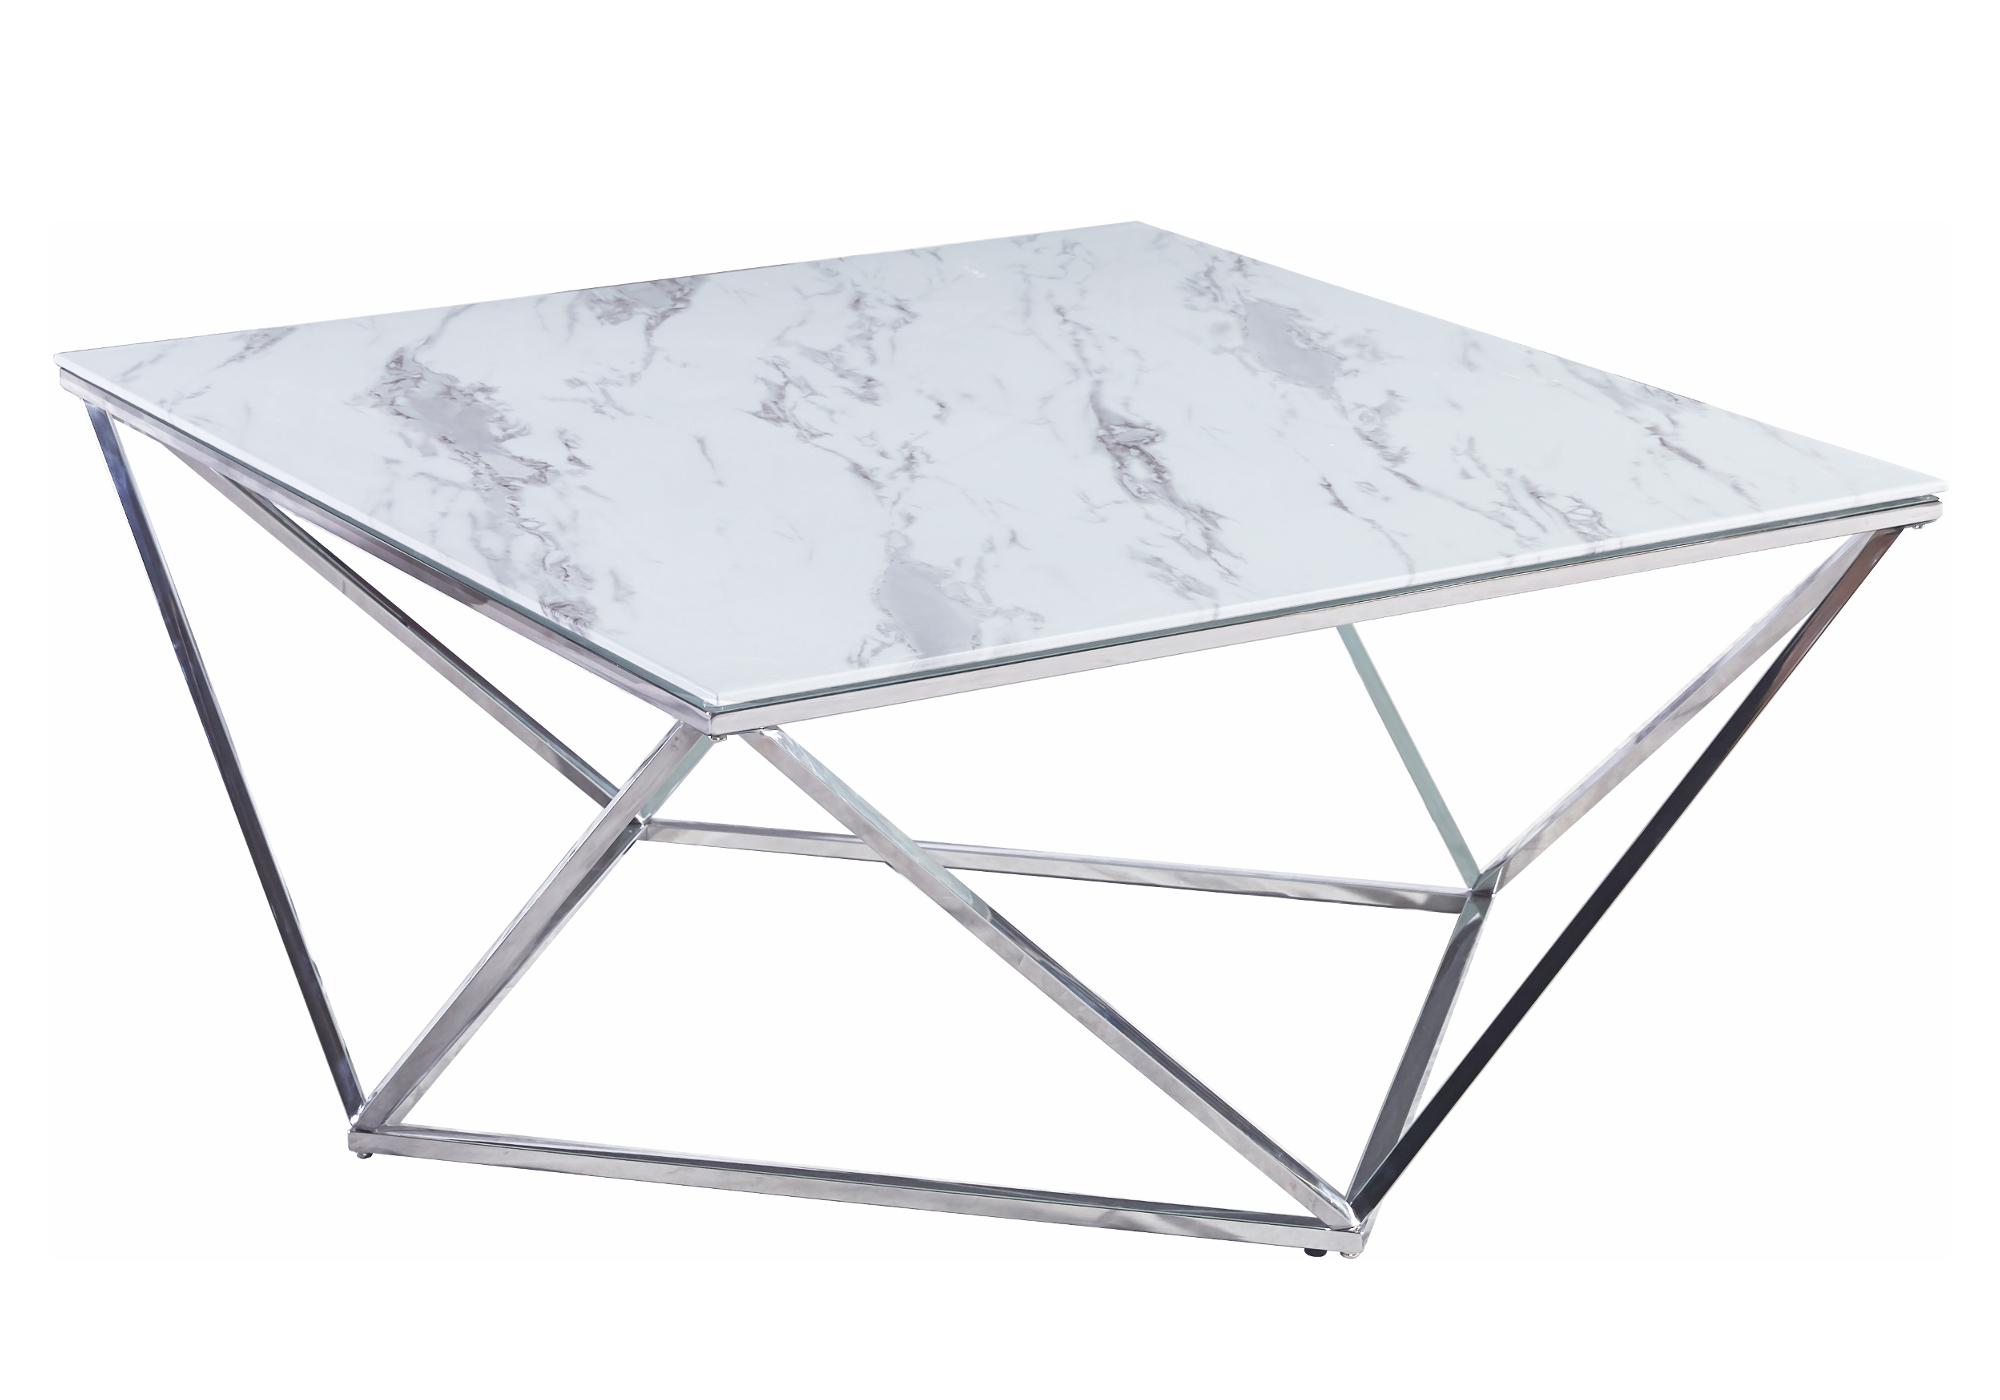 Table basse carré chrome marbre blanc ILÉA